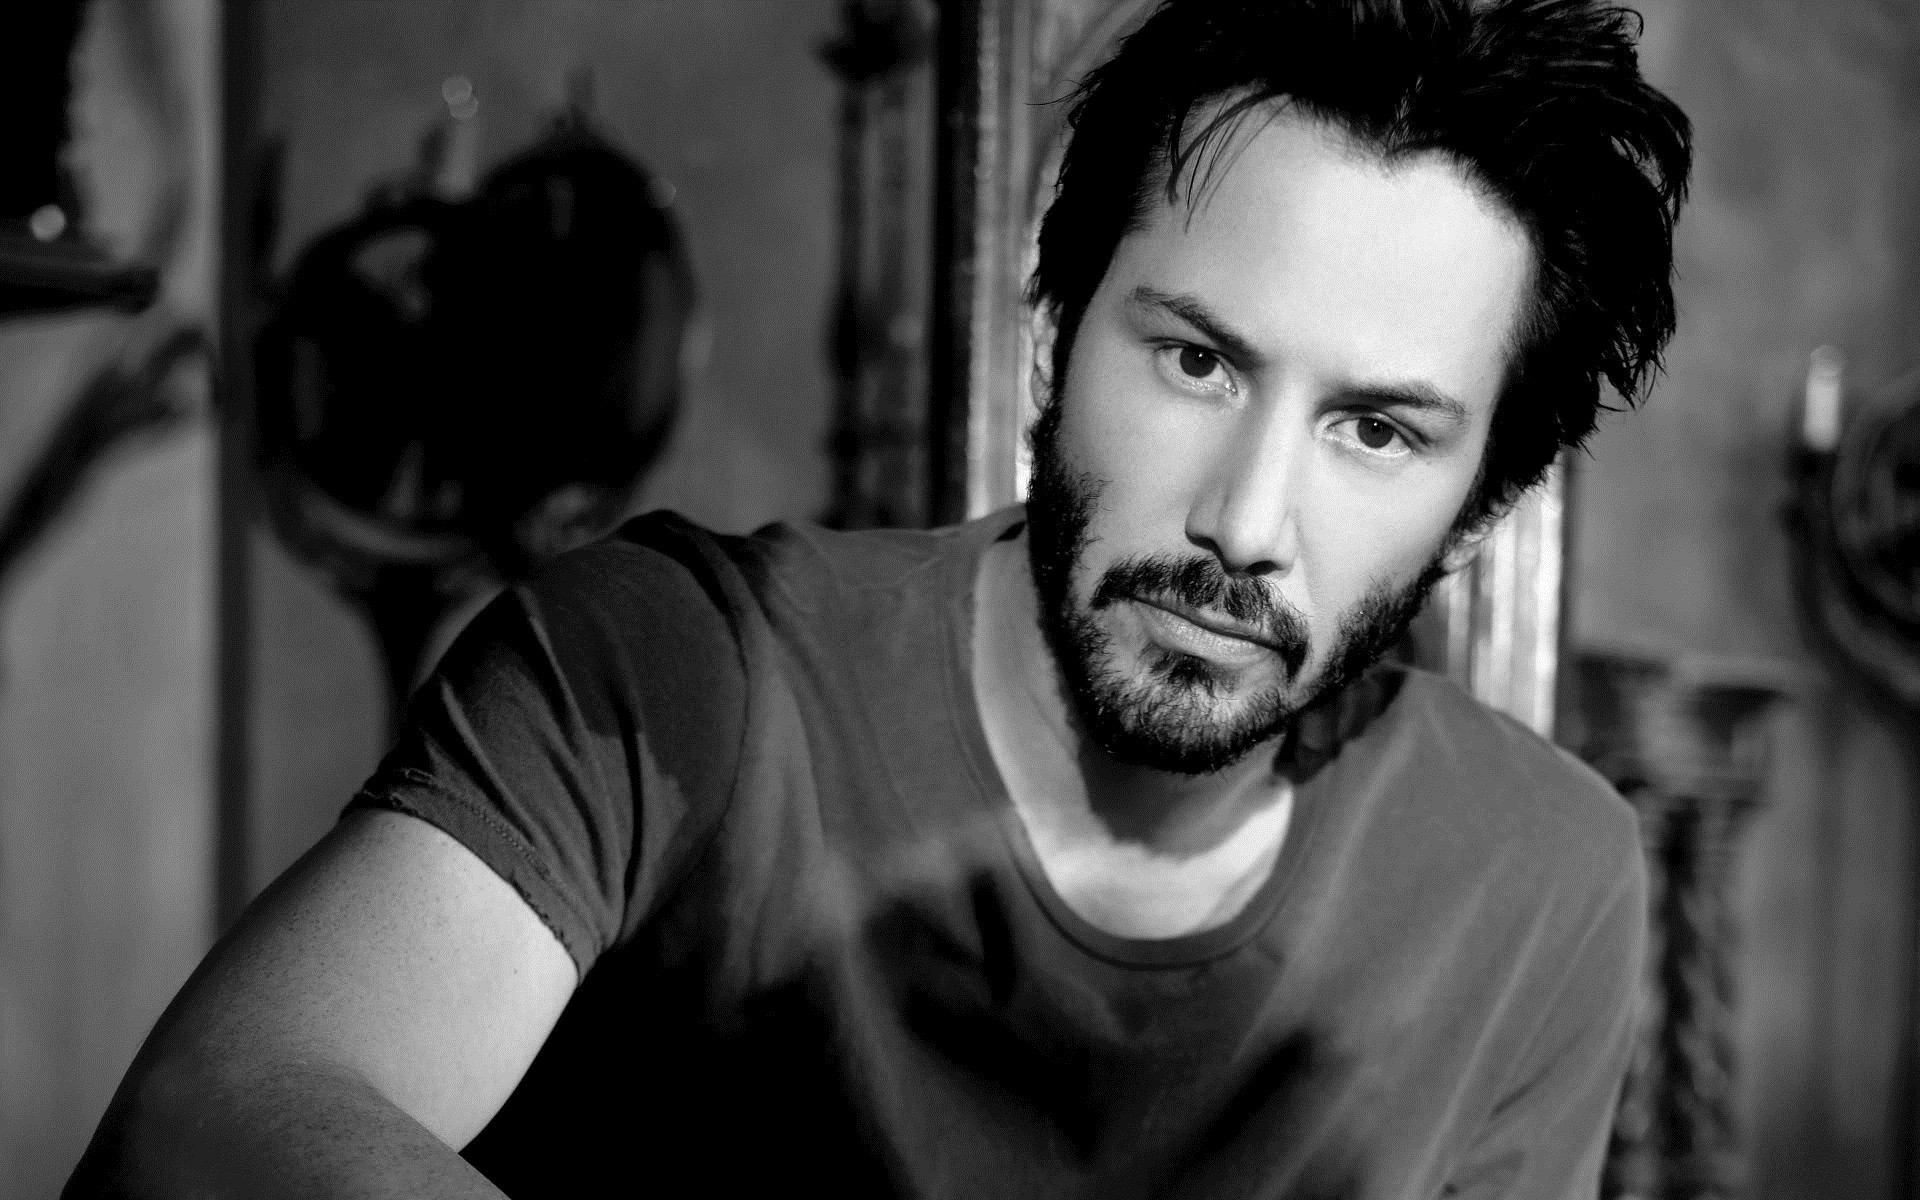 keanu reeves john wickkeanu reeves dota 2, keanu reeves twitter, keanu reeves movies, keanu reeves 2016, keanu reeves vk, keanu reeves films, keanu reeves filmography, keanu reeves young, keanu reeves biography, keanu reeves height, keanu reeves plays dota, keanu reeves net worth, keanu reeves wiki, keanu reeves quotes, keanu reeves фильмы, keanu reeves john wick, keanu reeves sister, keanu reeves training, keanu reeves gif, keanu reeves dota